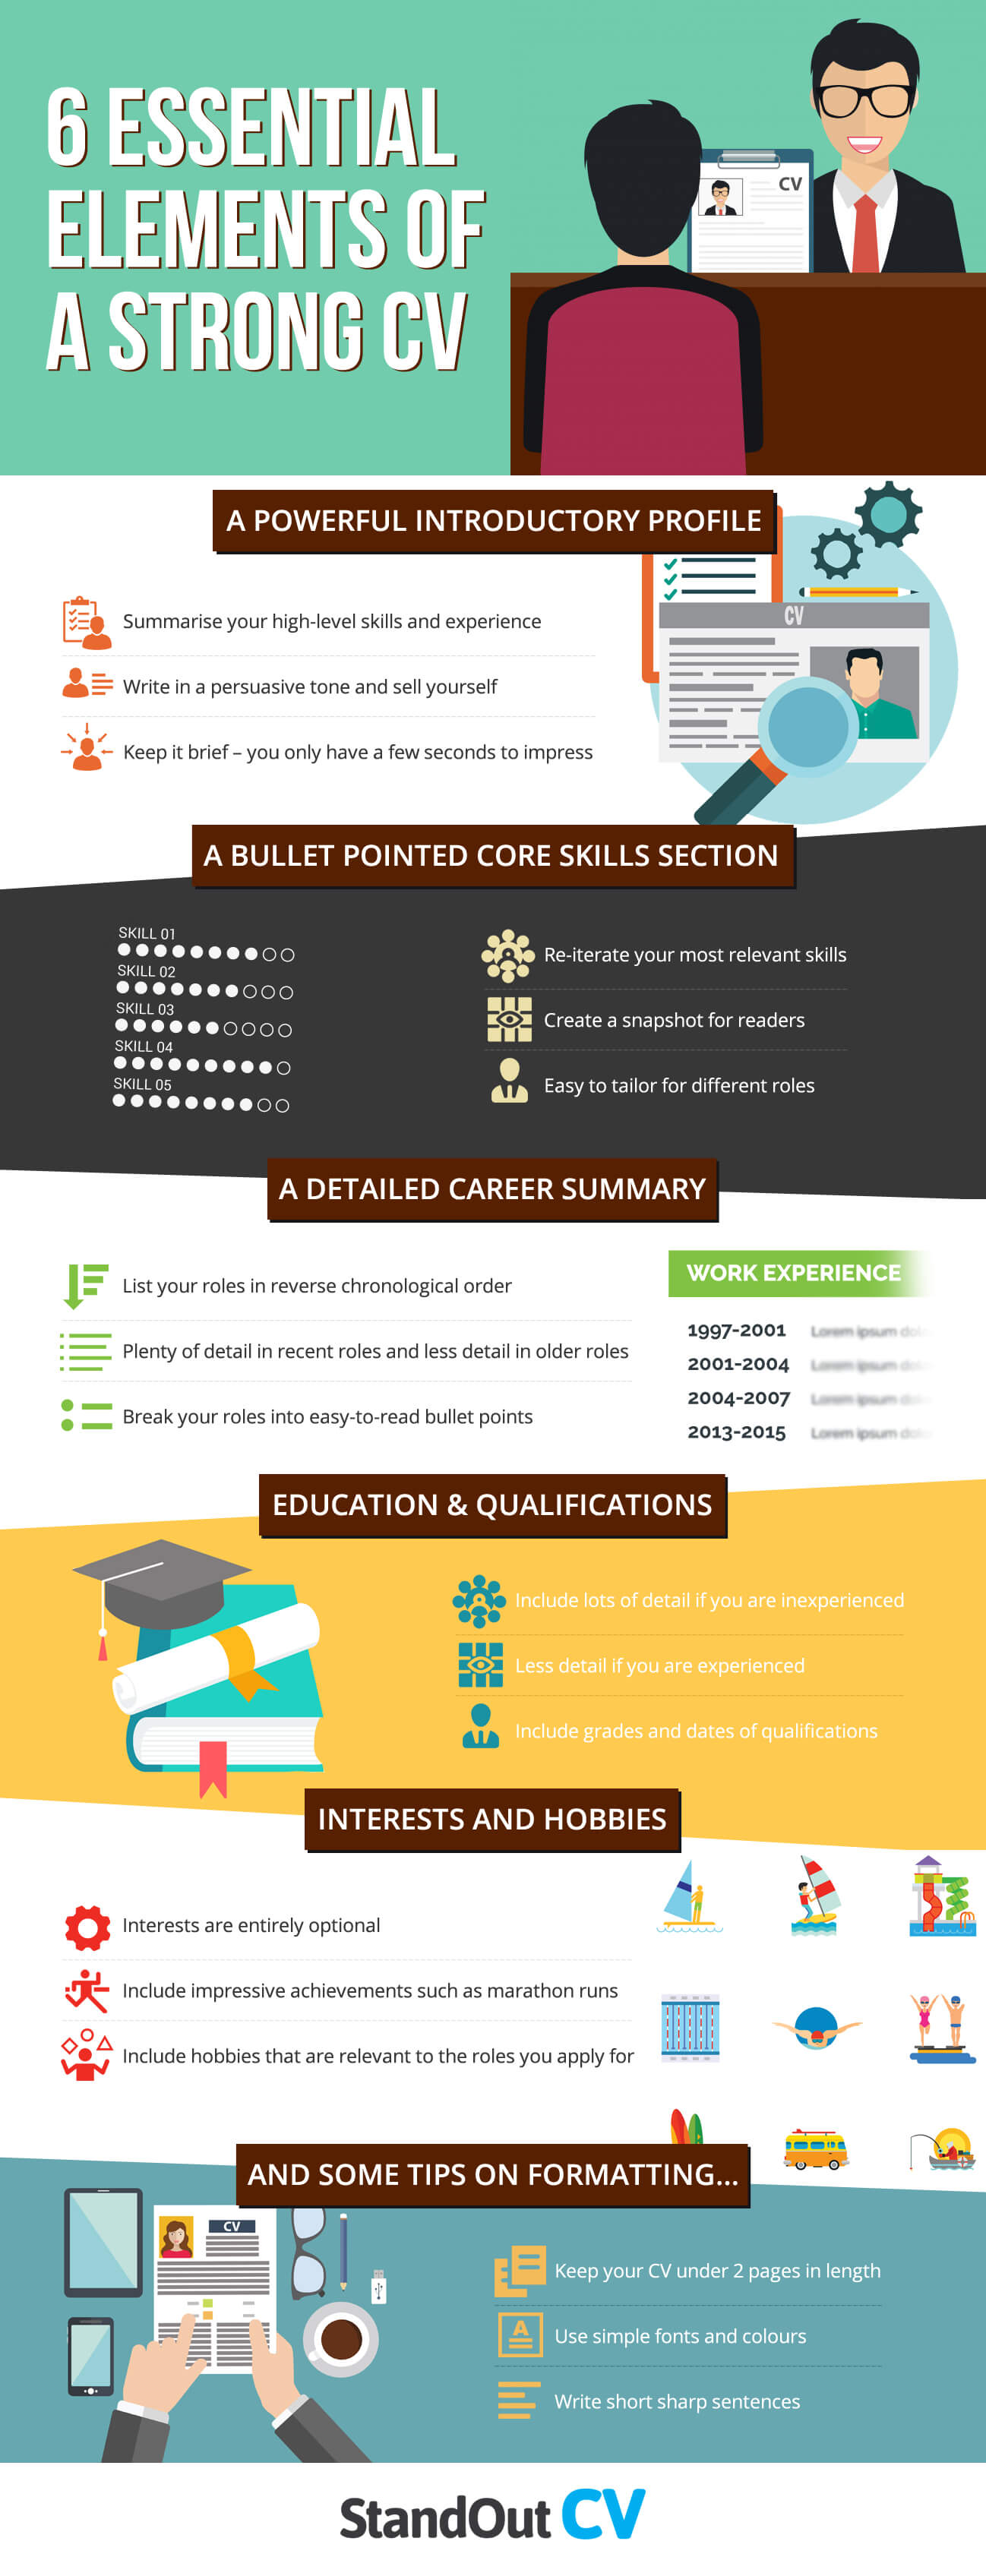 6 elements of a strong CV infographic